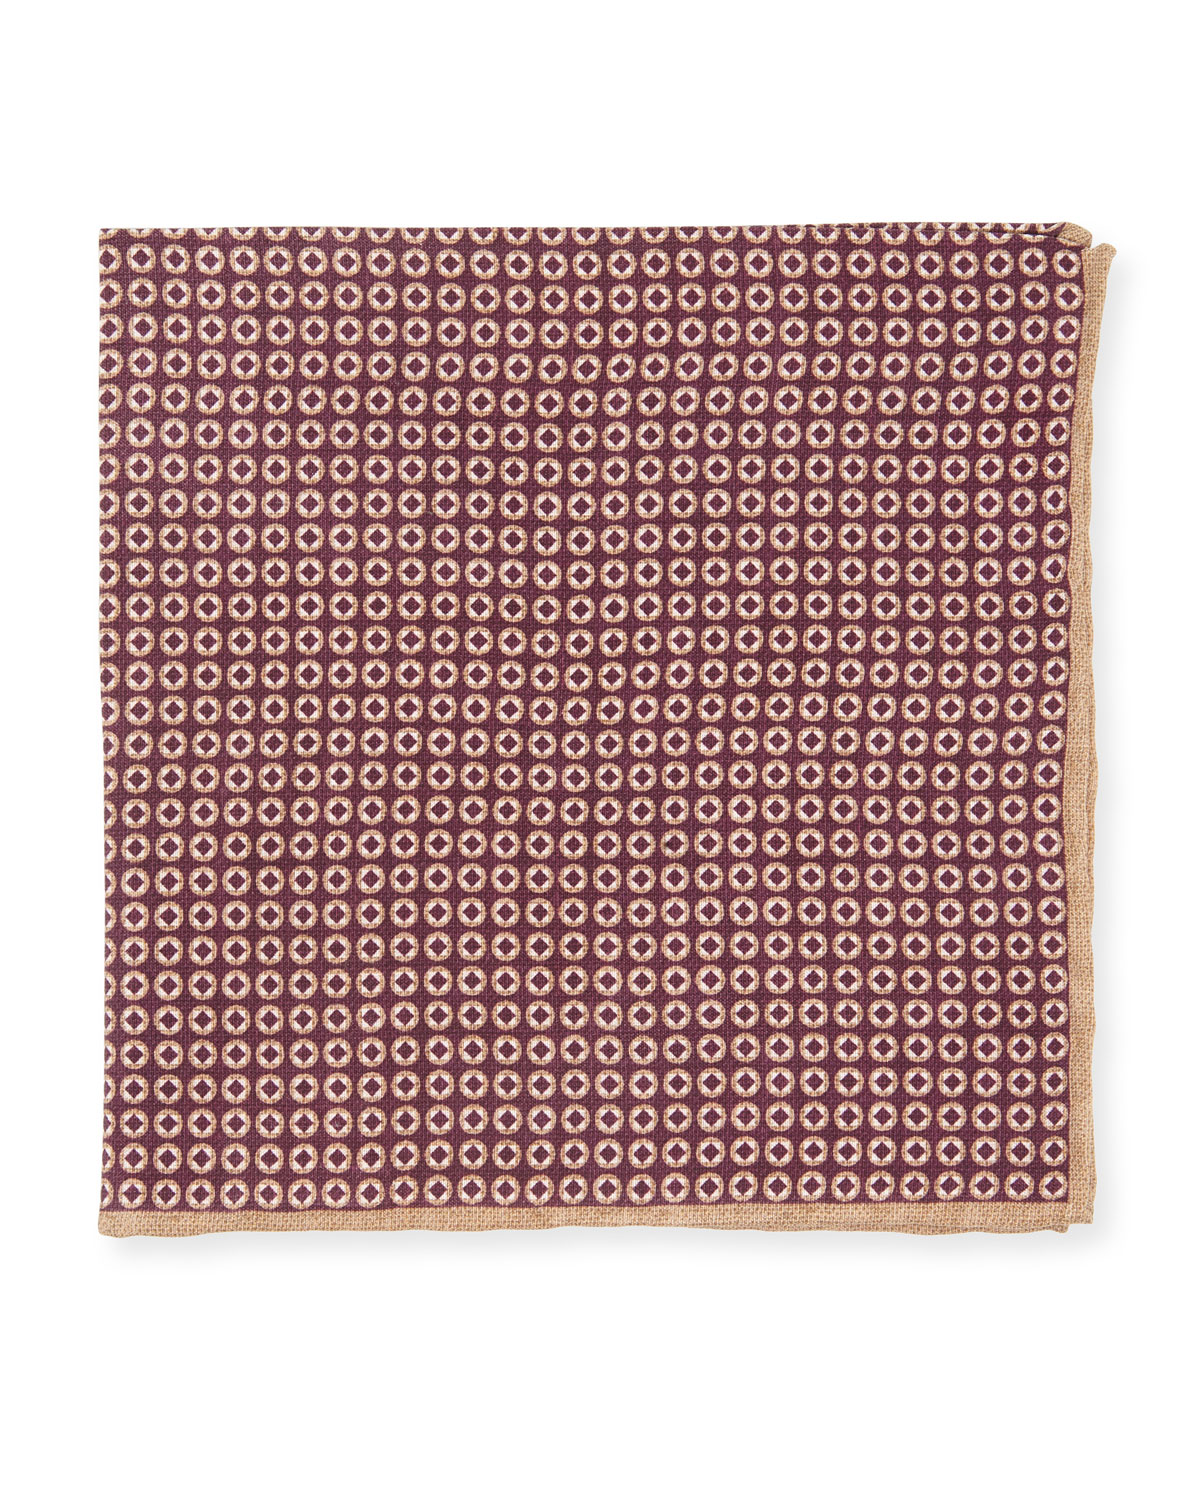 Brunello Cucinelli Accessories MEDALLION POCKET SQUARE